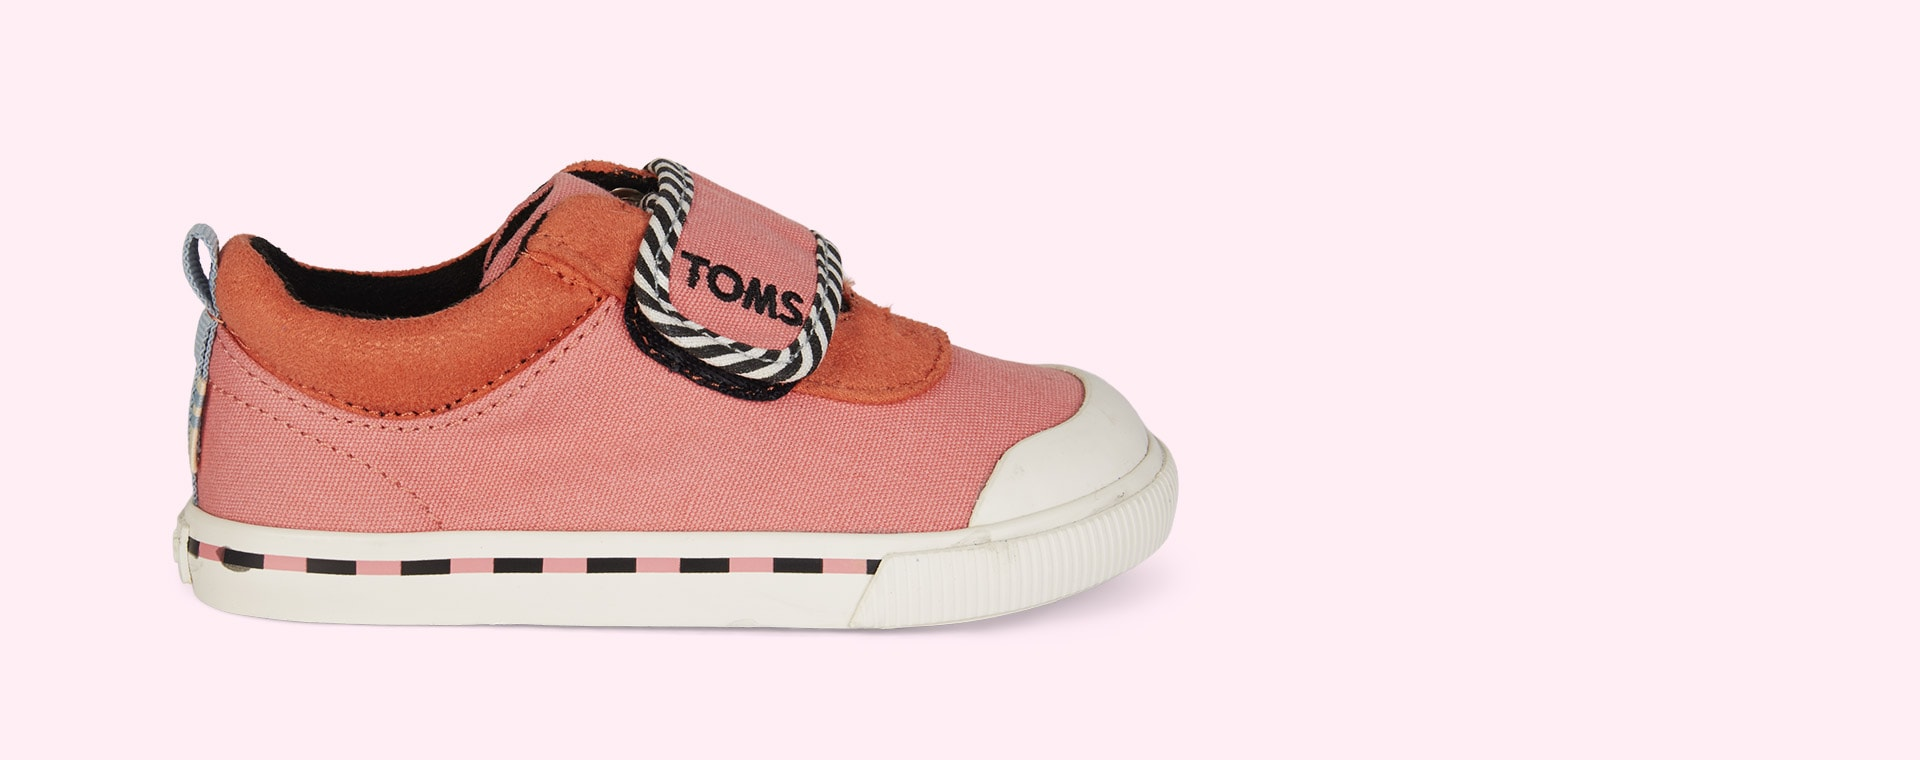 Strawberry Milkshake TOMS Doheny Sneaker